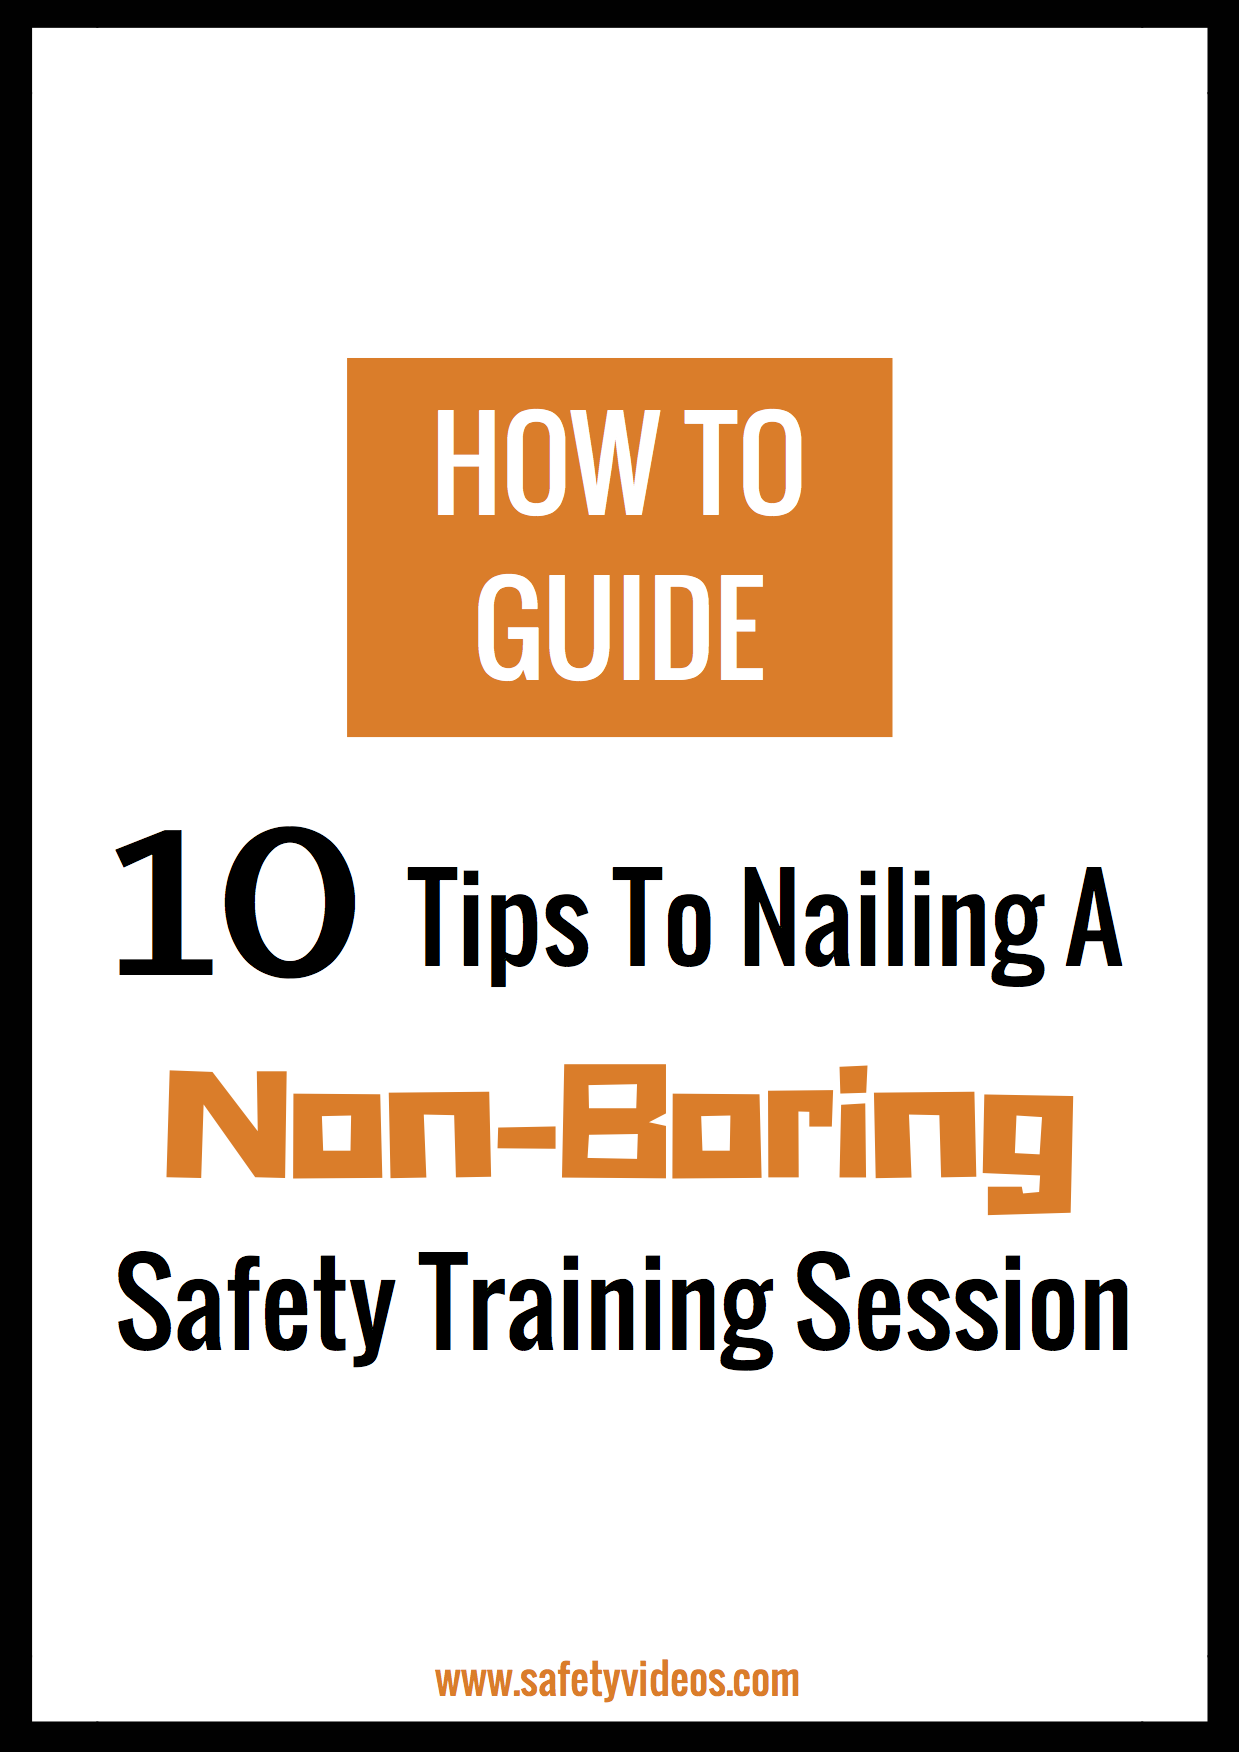 cdd3c4c7eae71471215909-10-Tips-To-Nailing-Safety-Videos-dragged.png